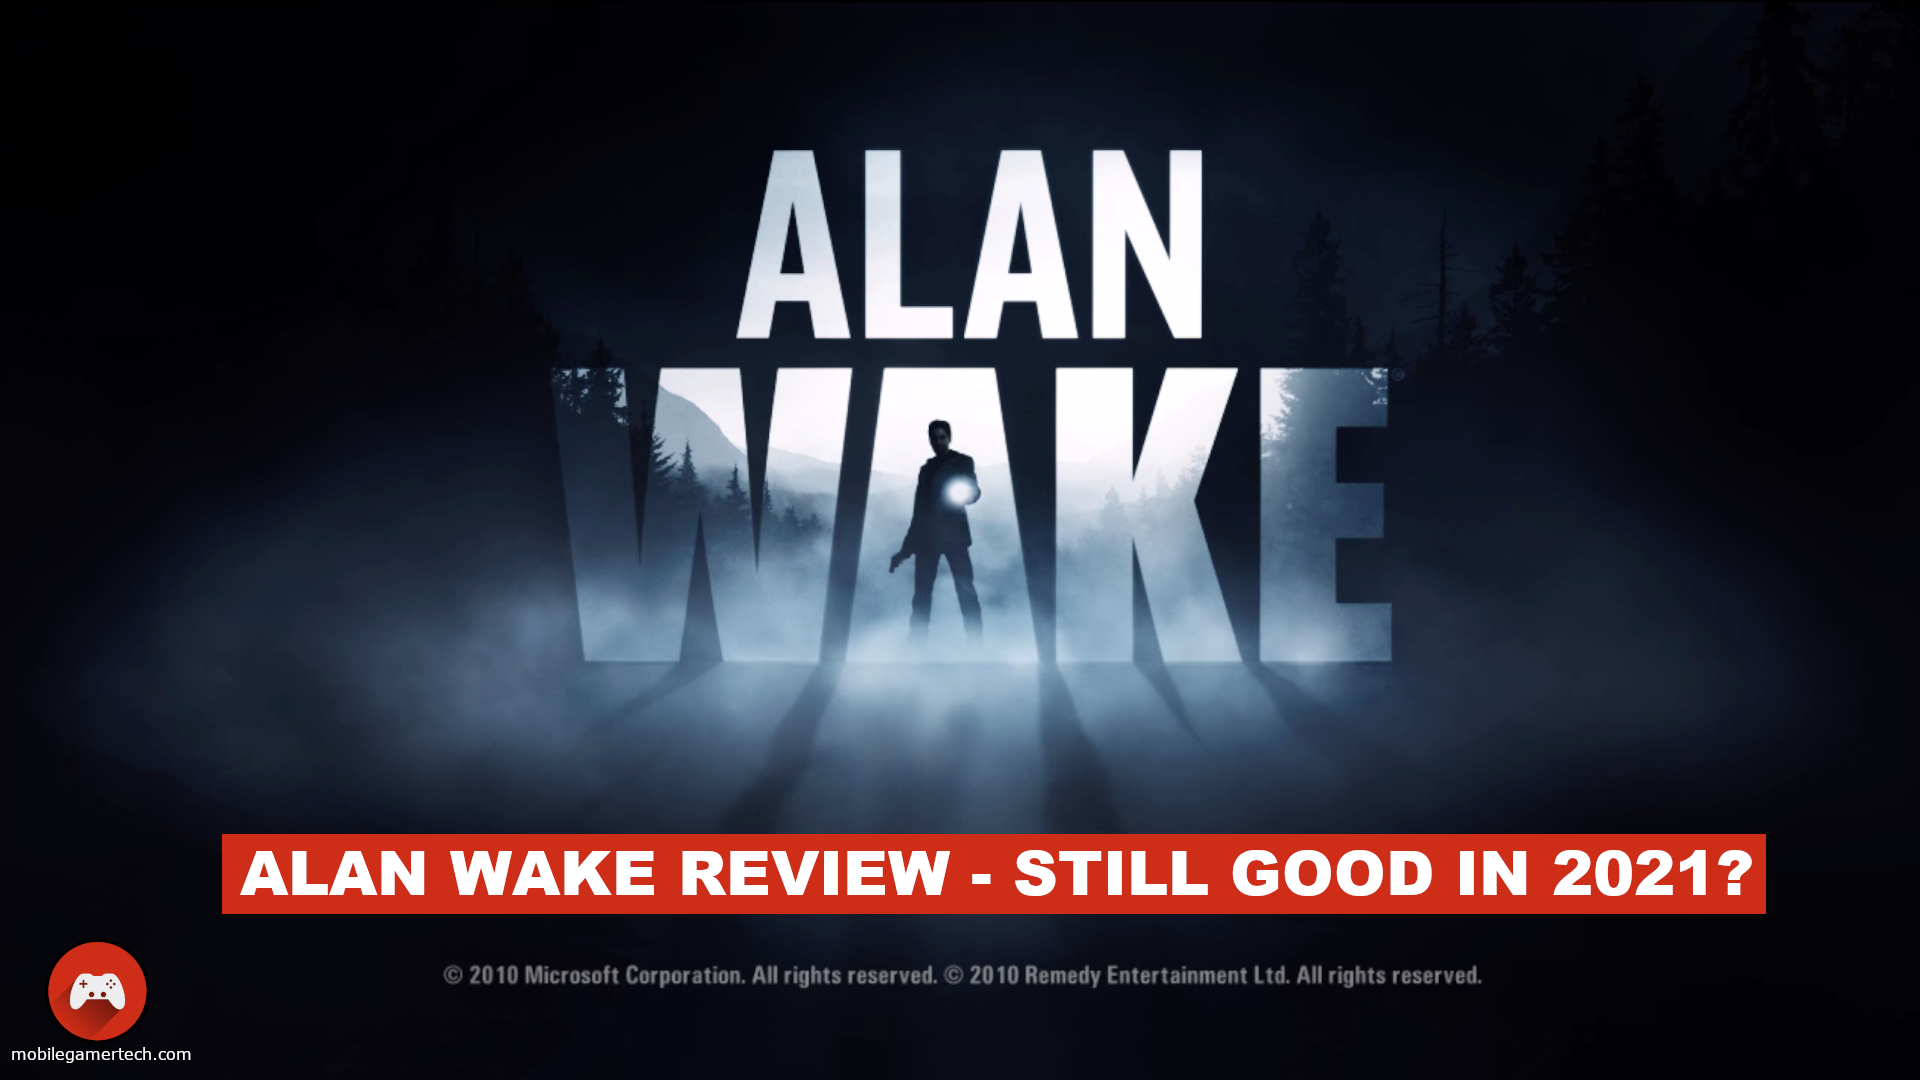 alan wake review 2021